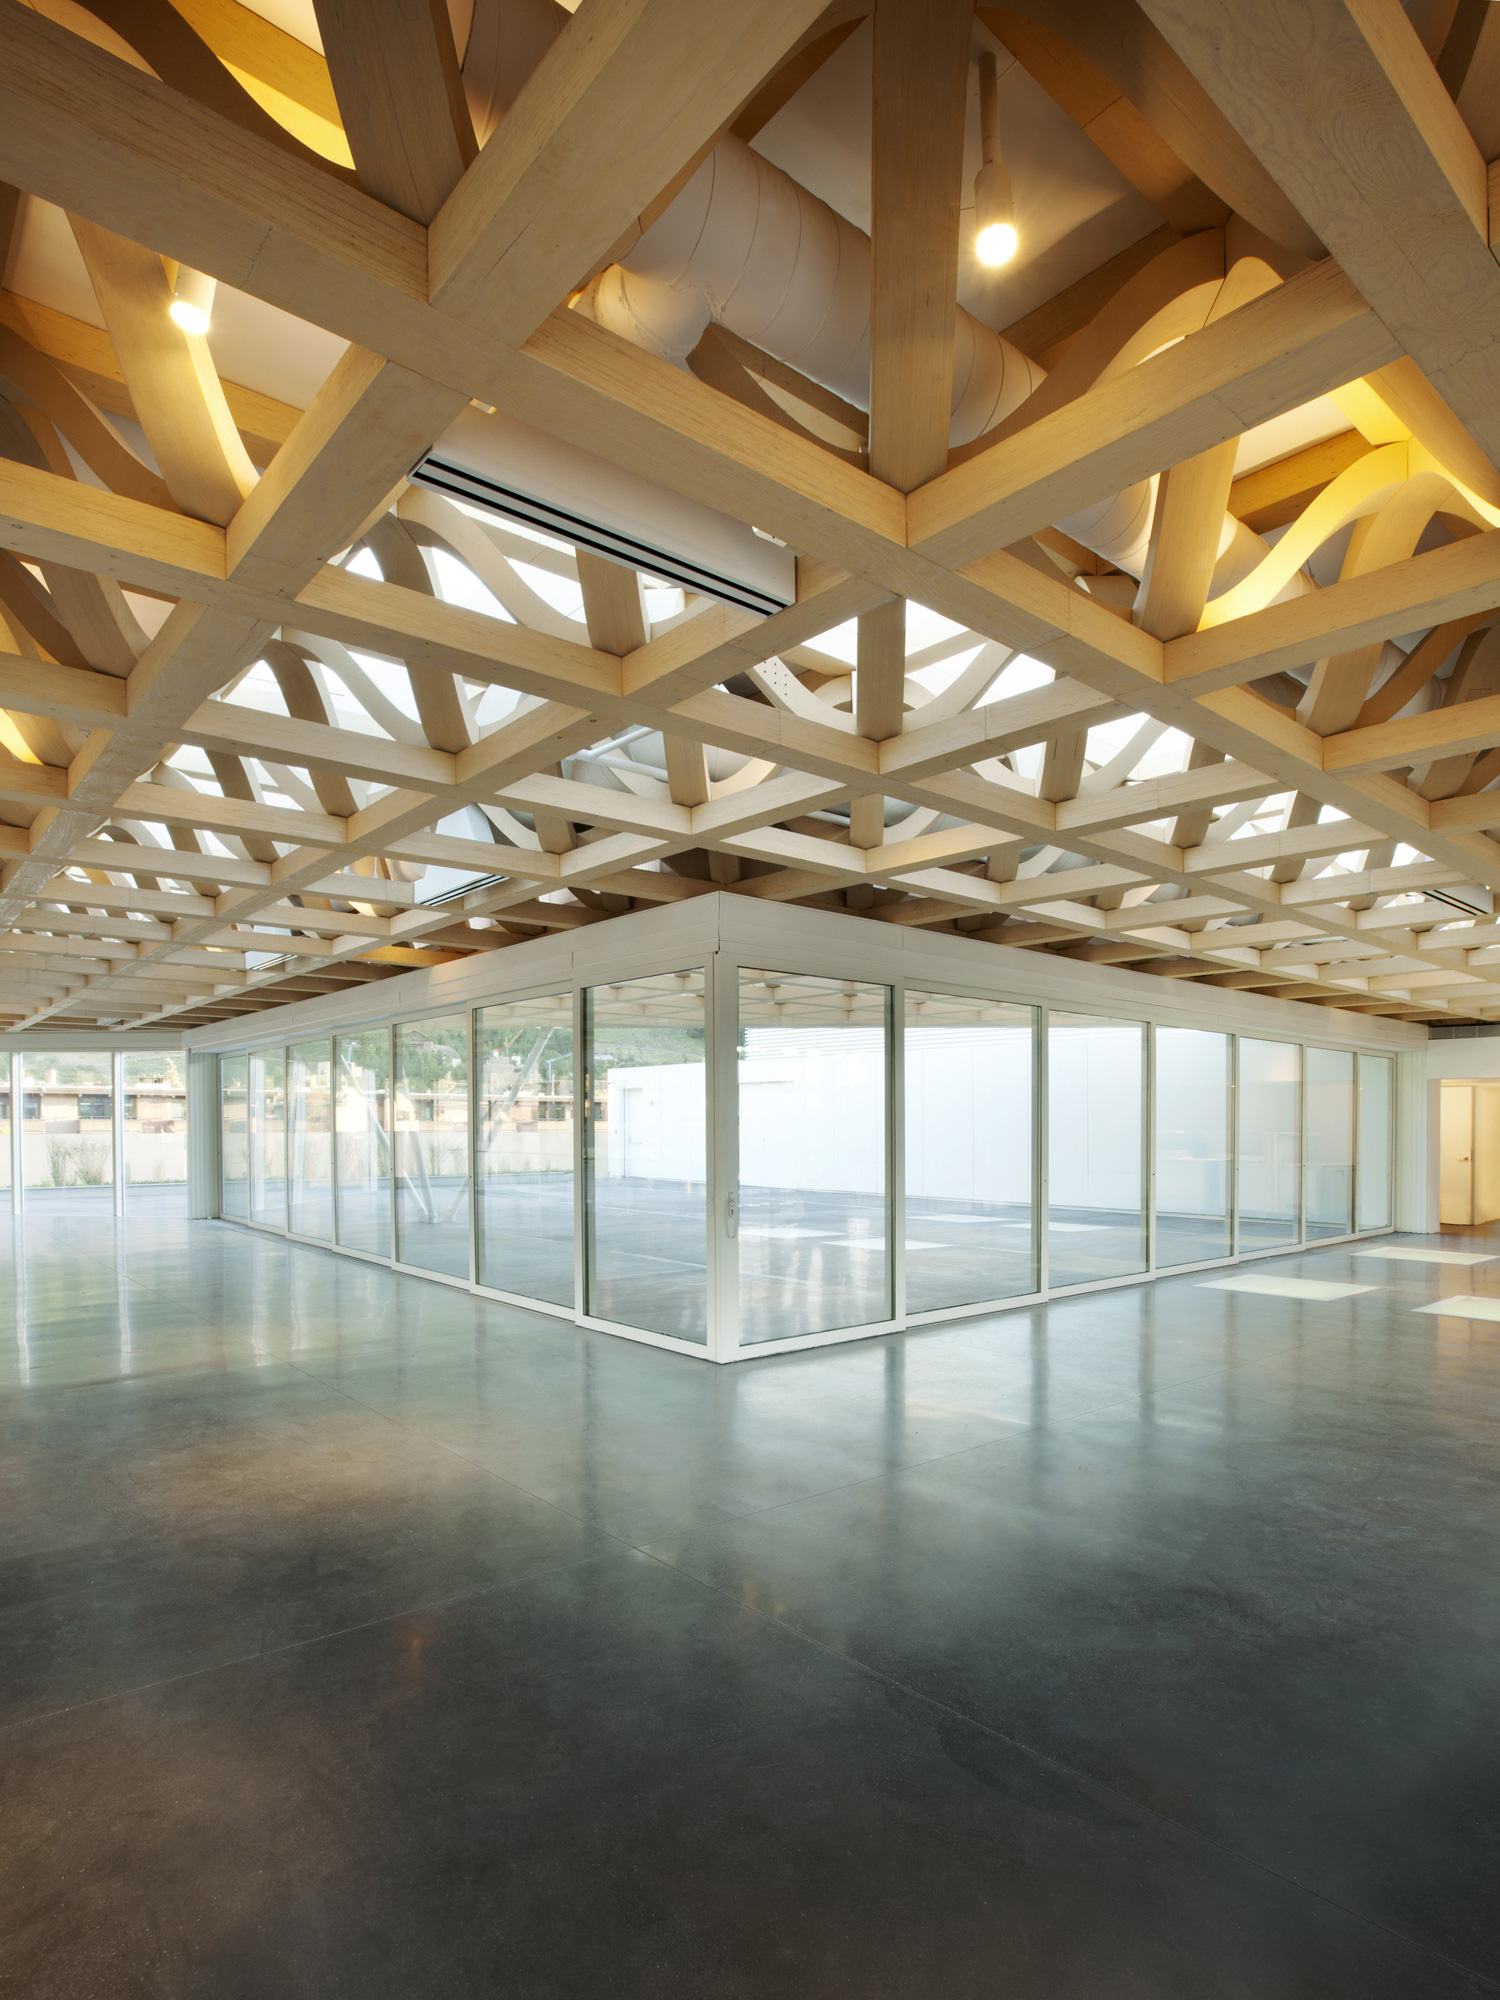 Aspen Art Museum / Shigeru Ban Architects (29)